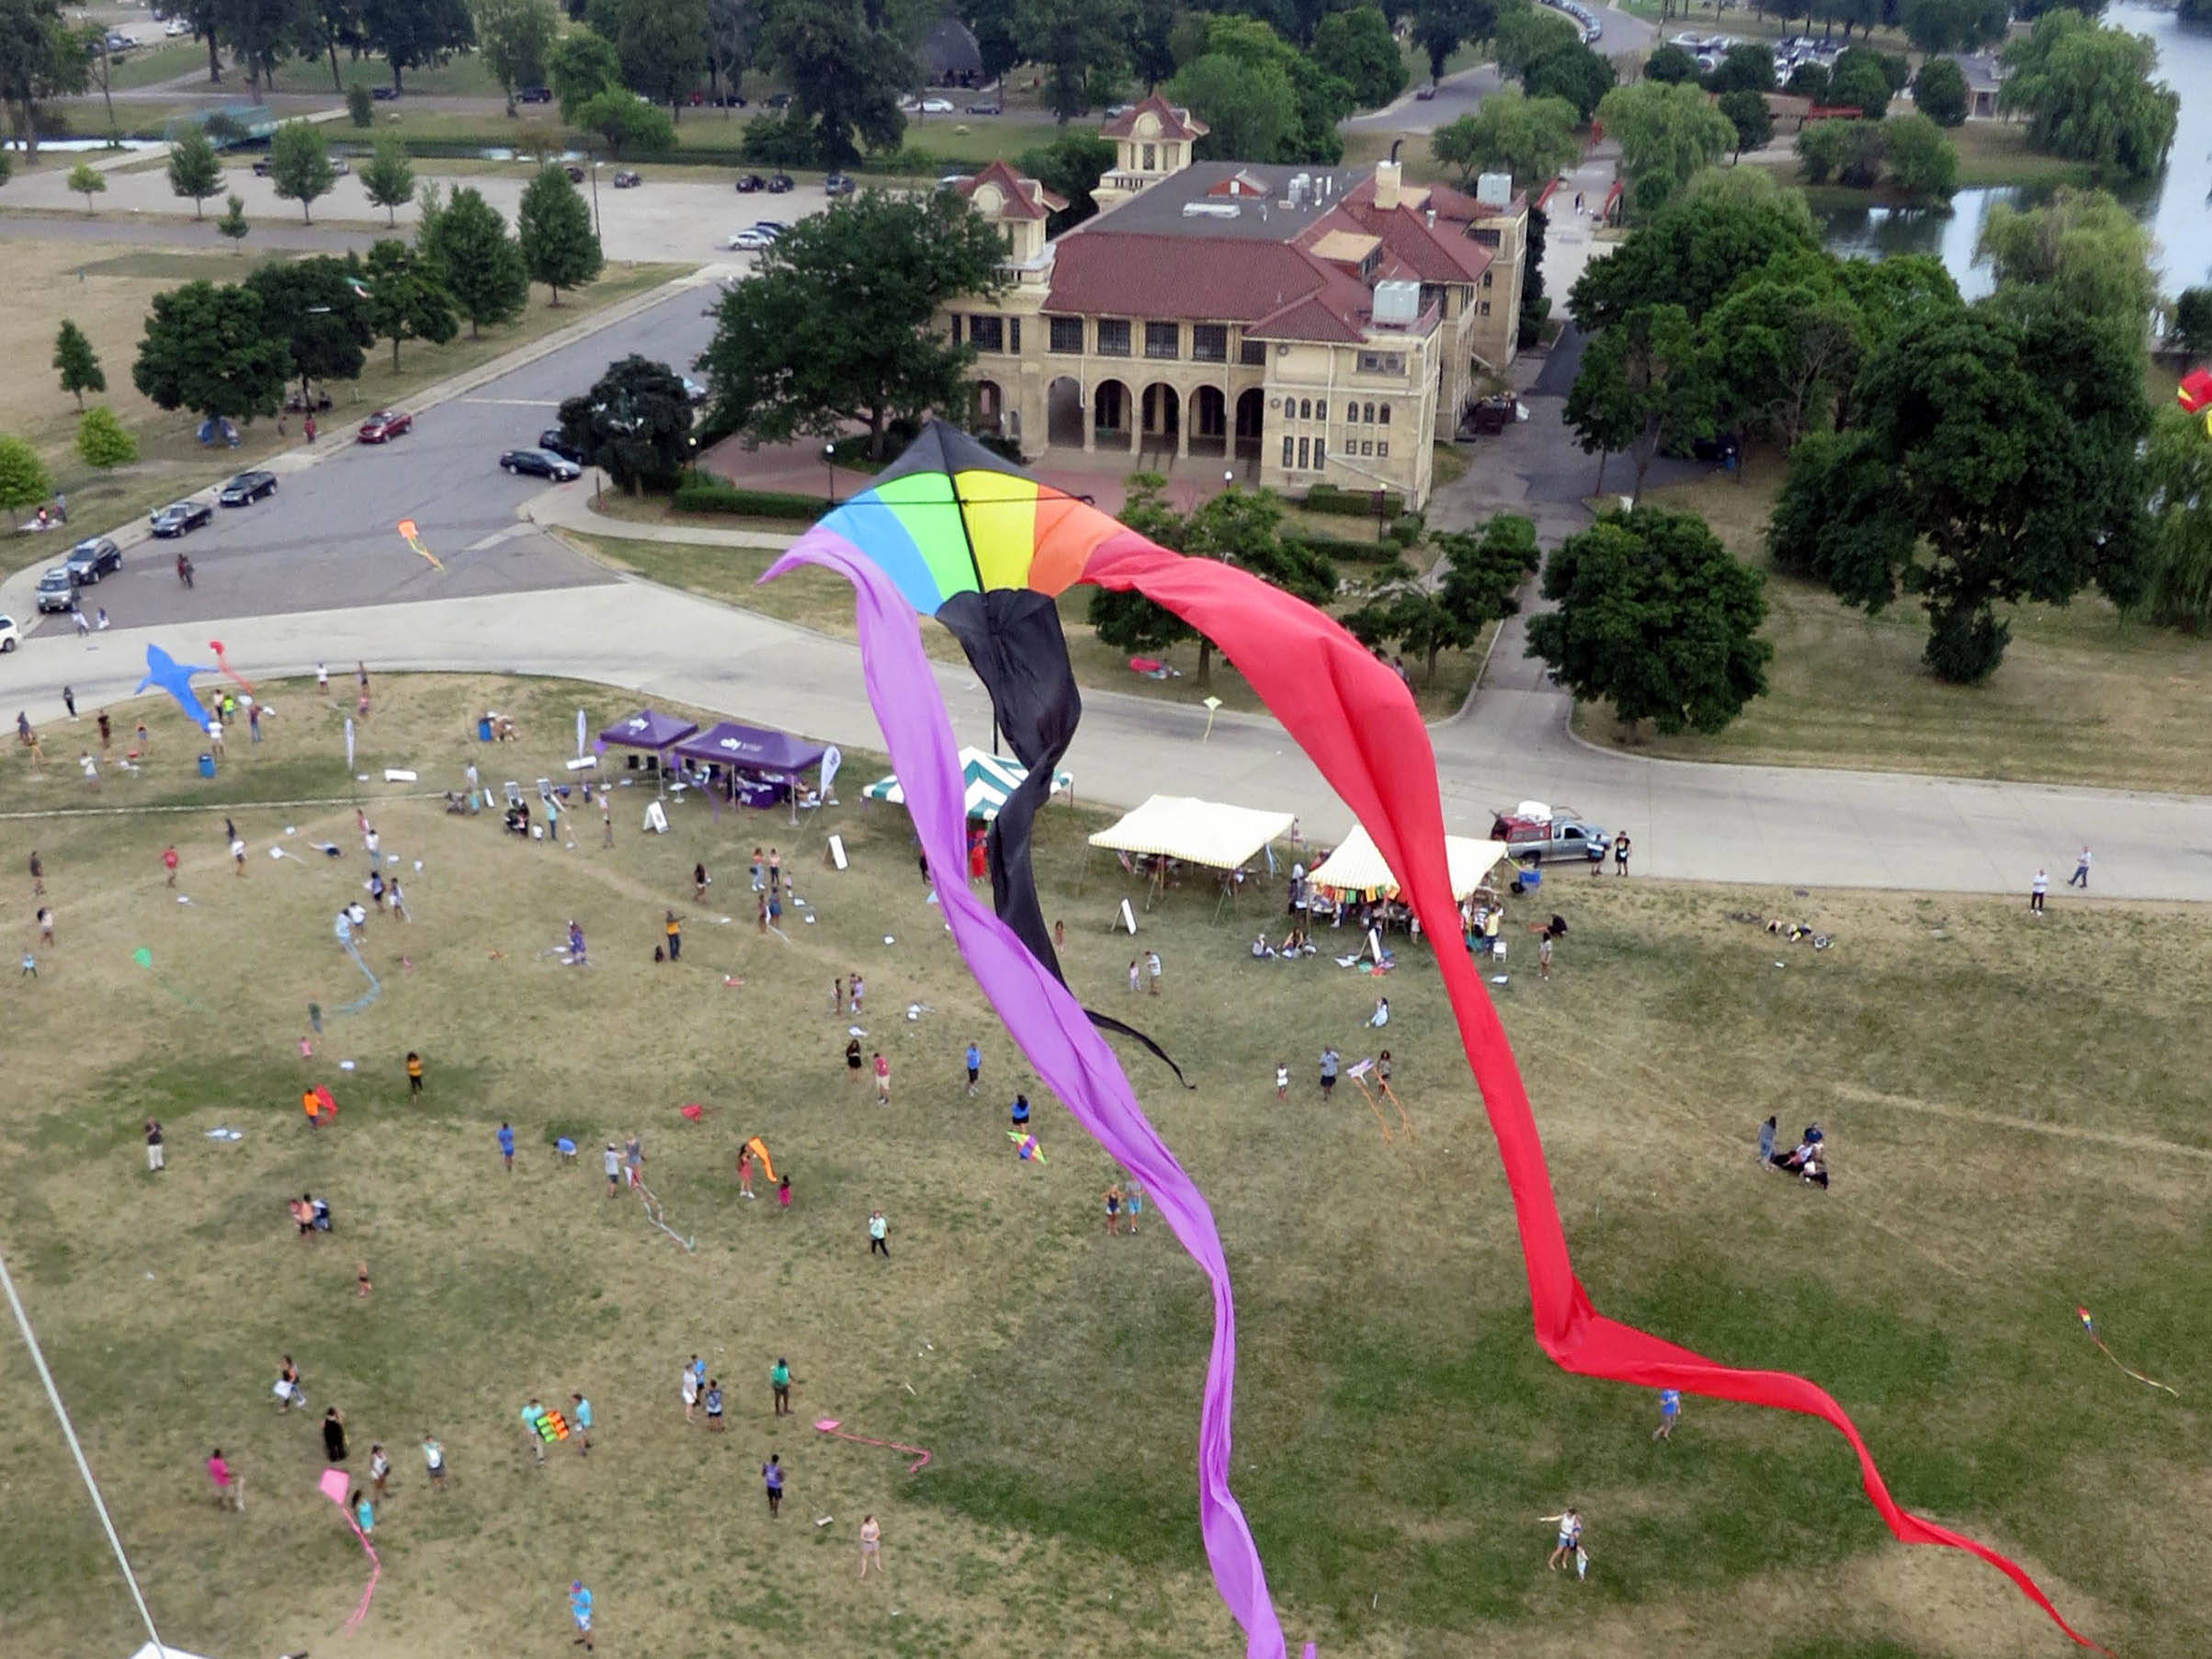 Detroit Kite Festival aerial photos